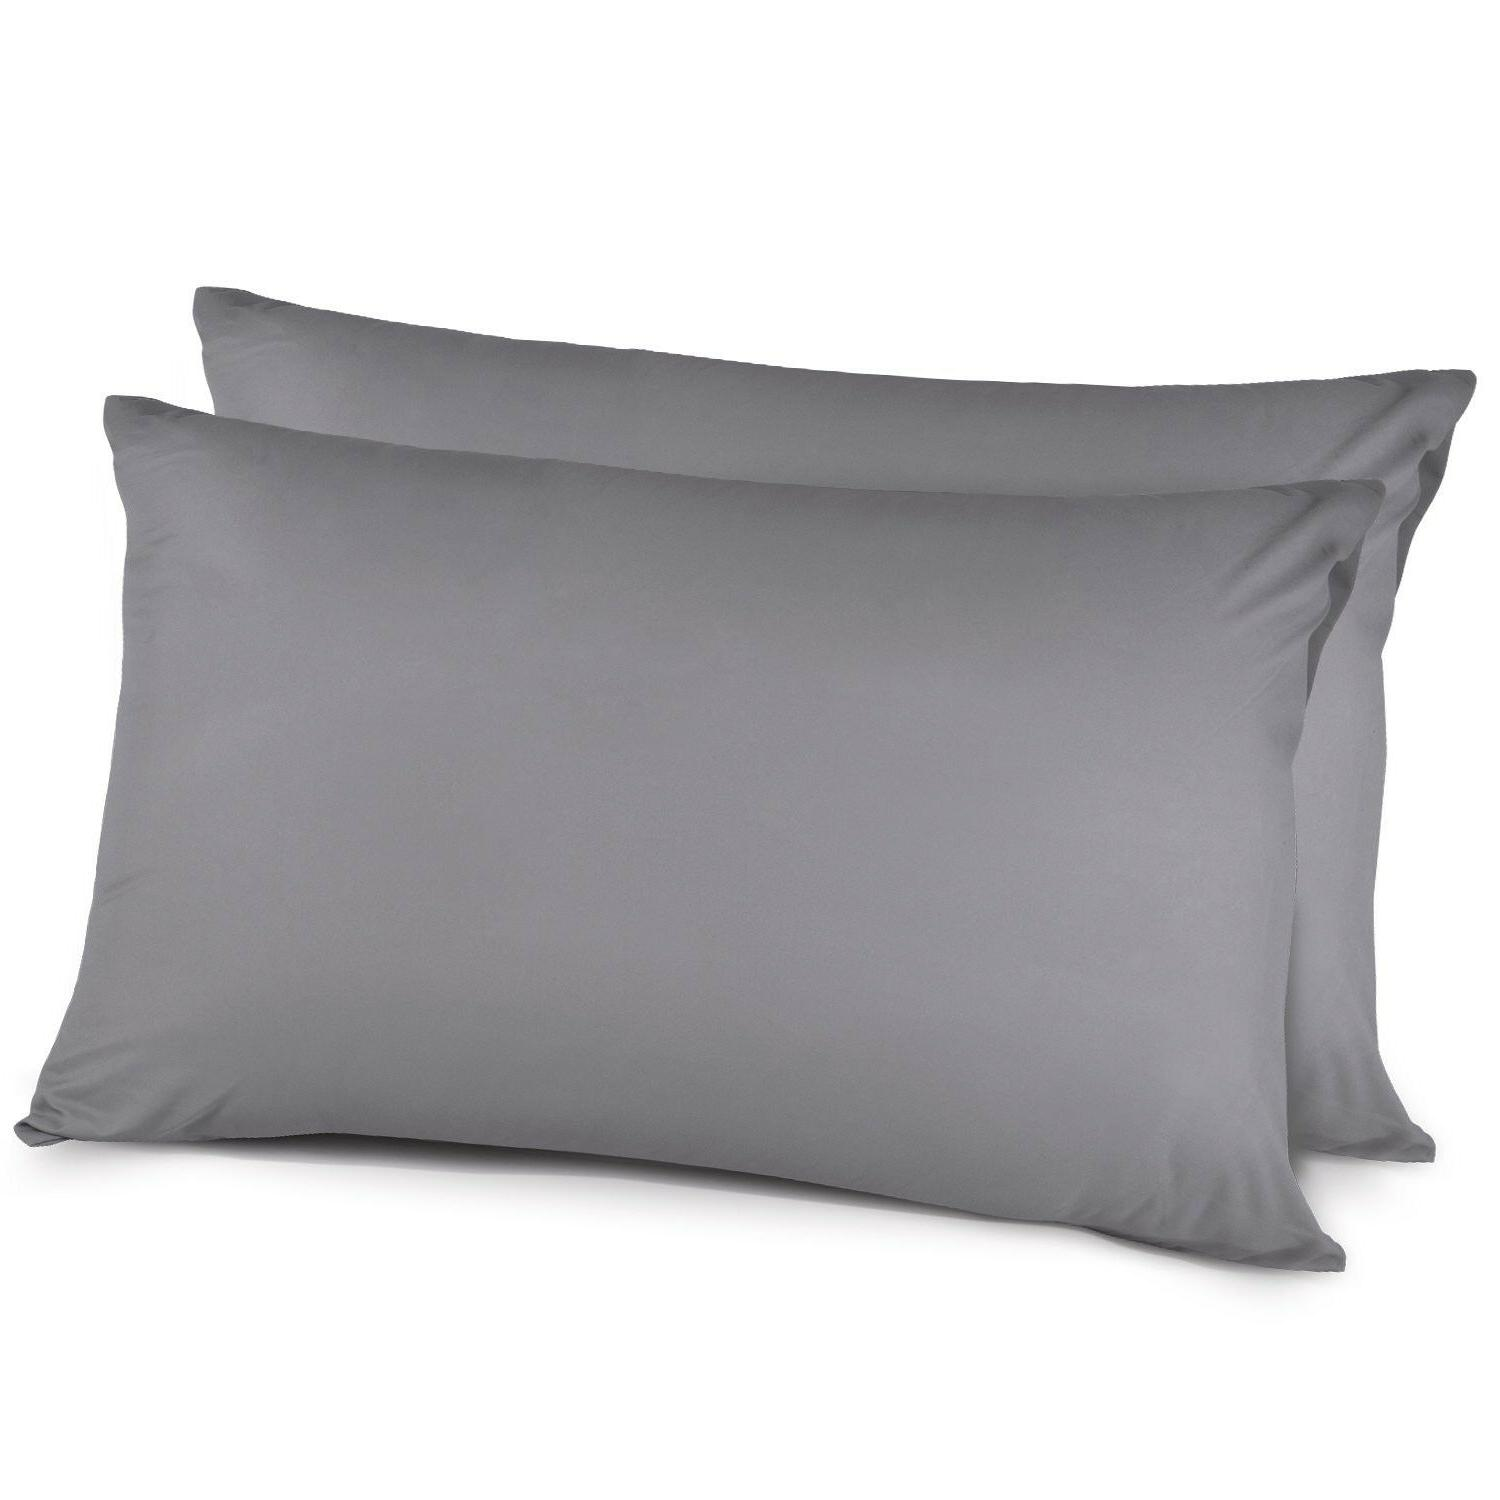 Pillow Cases Queen Size - 100% Brushed Microfiber, Ultra Sof